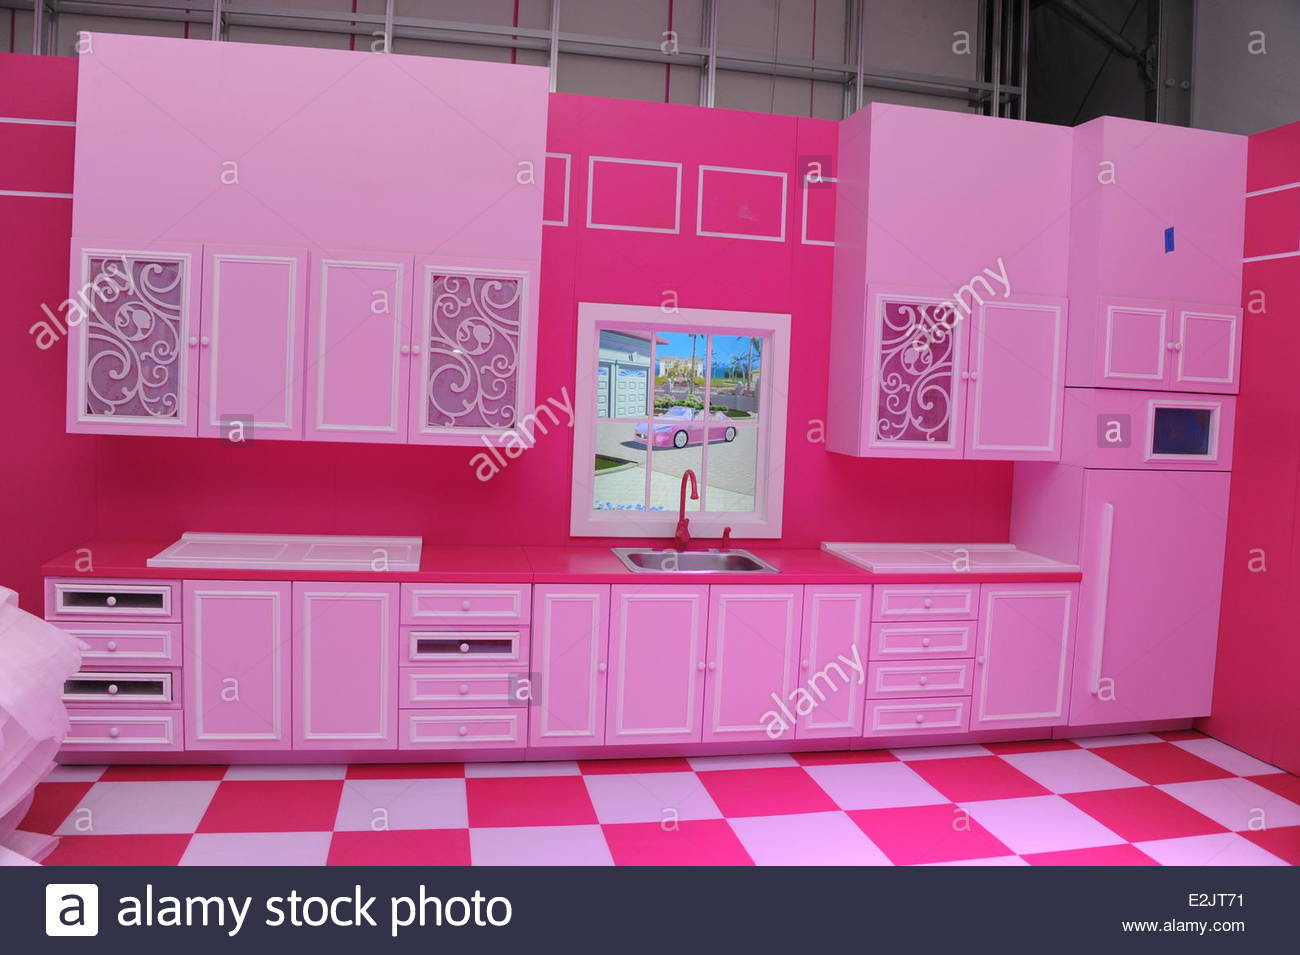 Kitchen at a guided tour at barbie the dreamhouse experience in mitte where berlin germany when 12 apr 2013